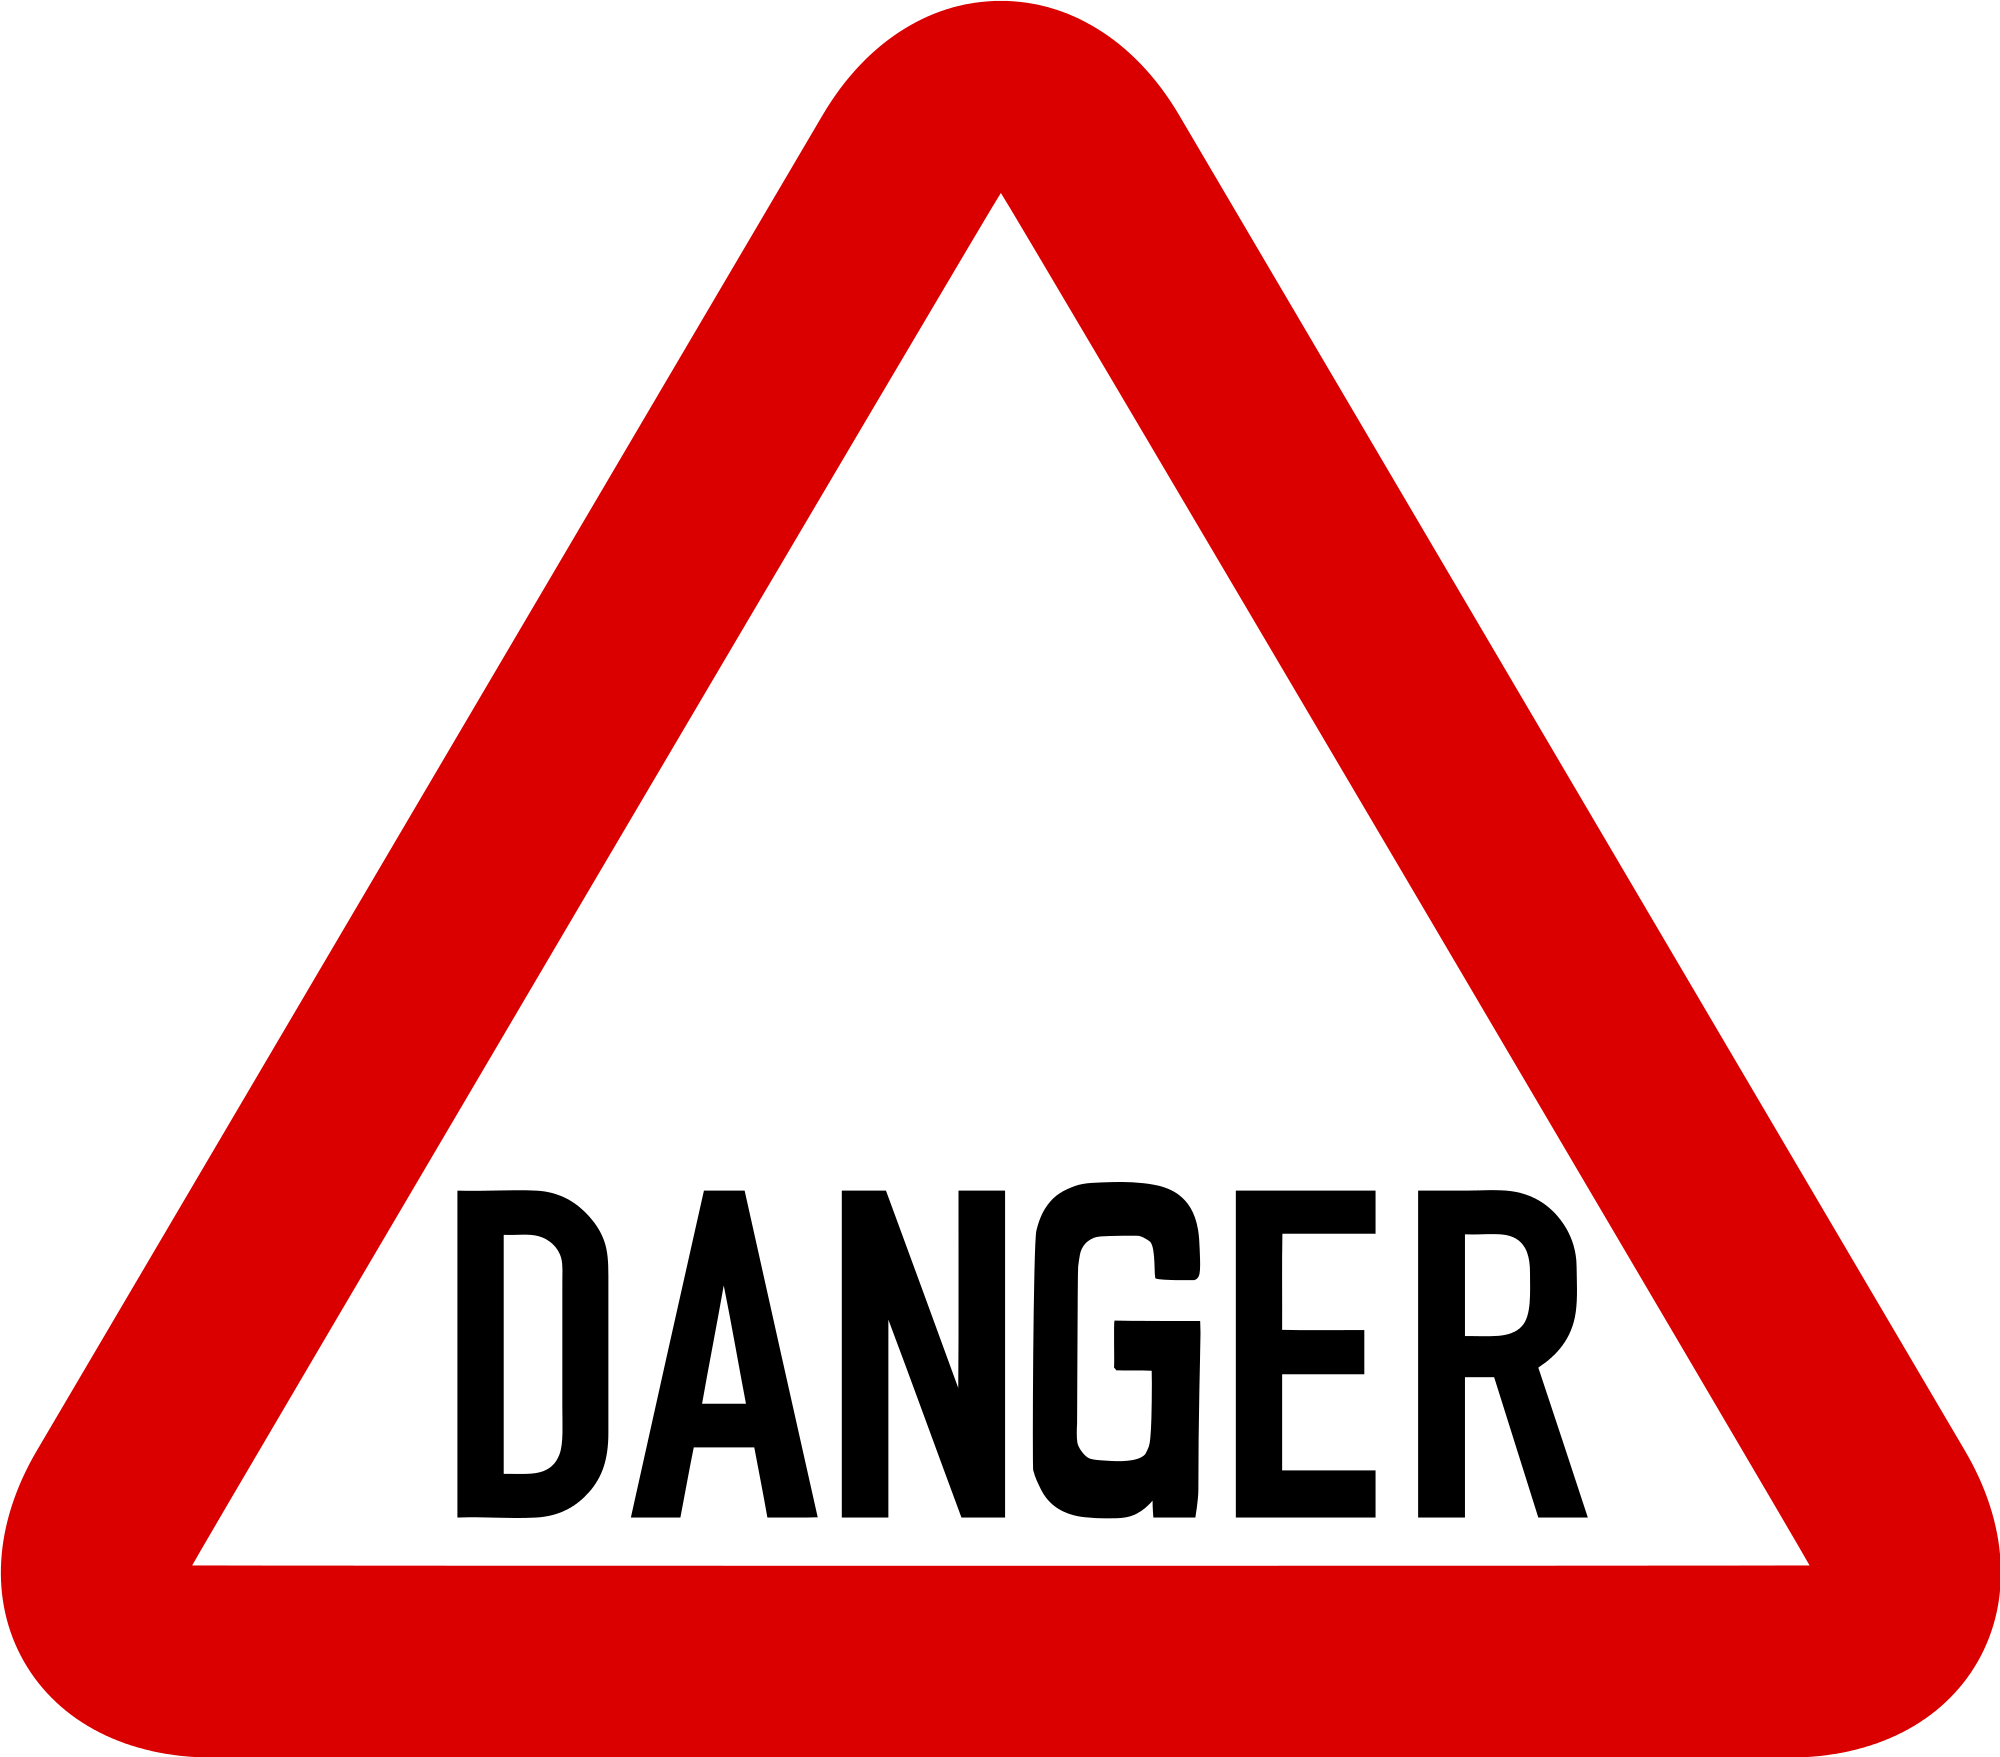 Danger clipart dangerous road. Free cliparts download clip